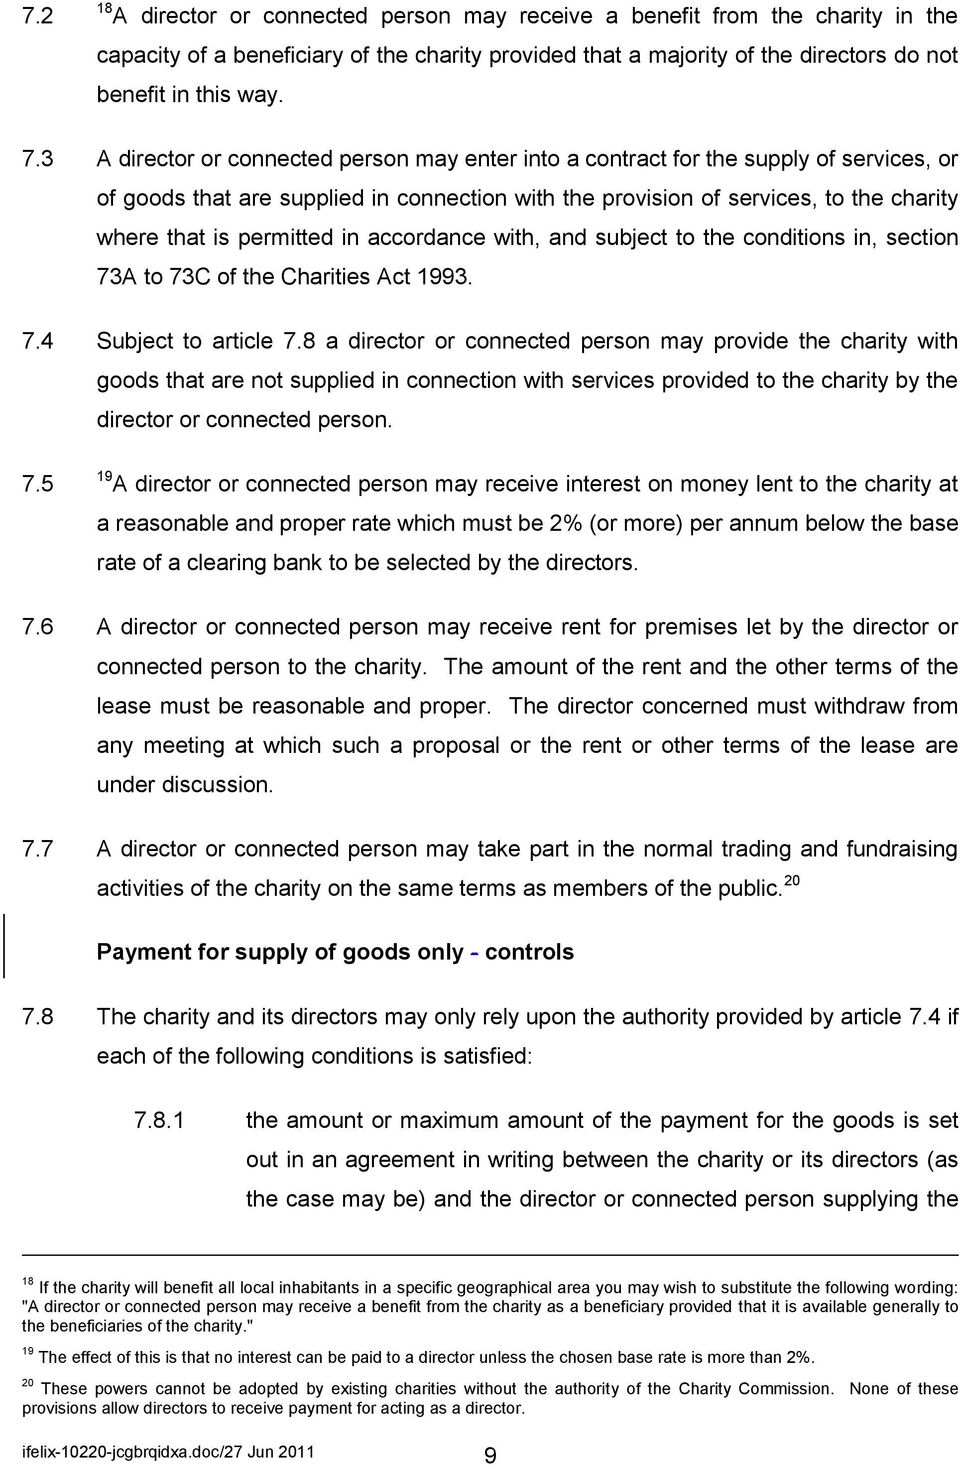 permitted in accordance with, and subject to the conditions in, section 73A to 73C of the Charities Act 1993. 7.4 Subject to article 7.